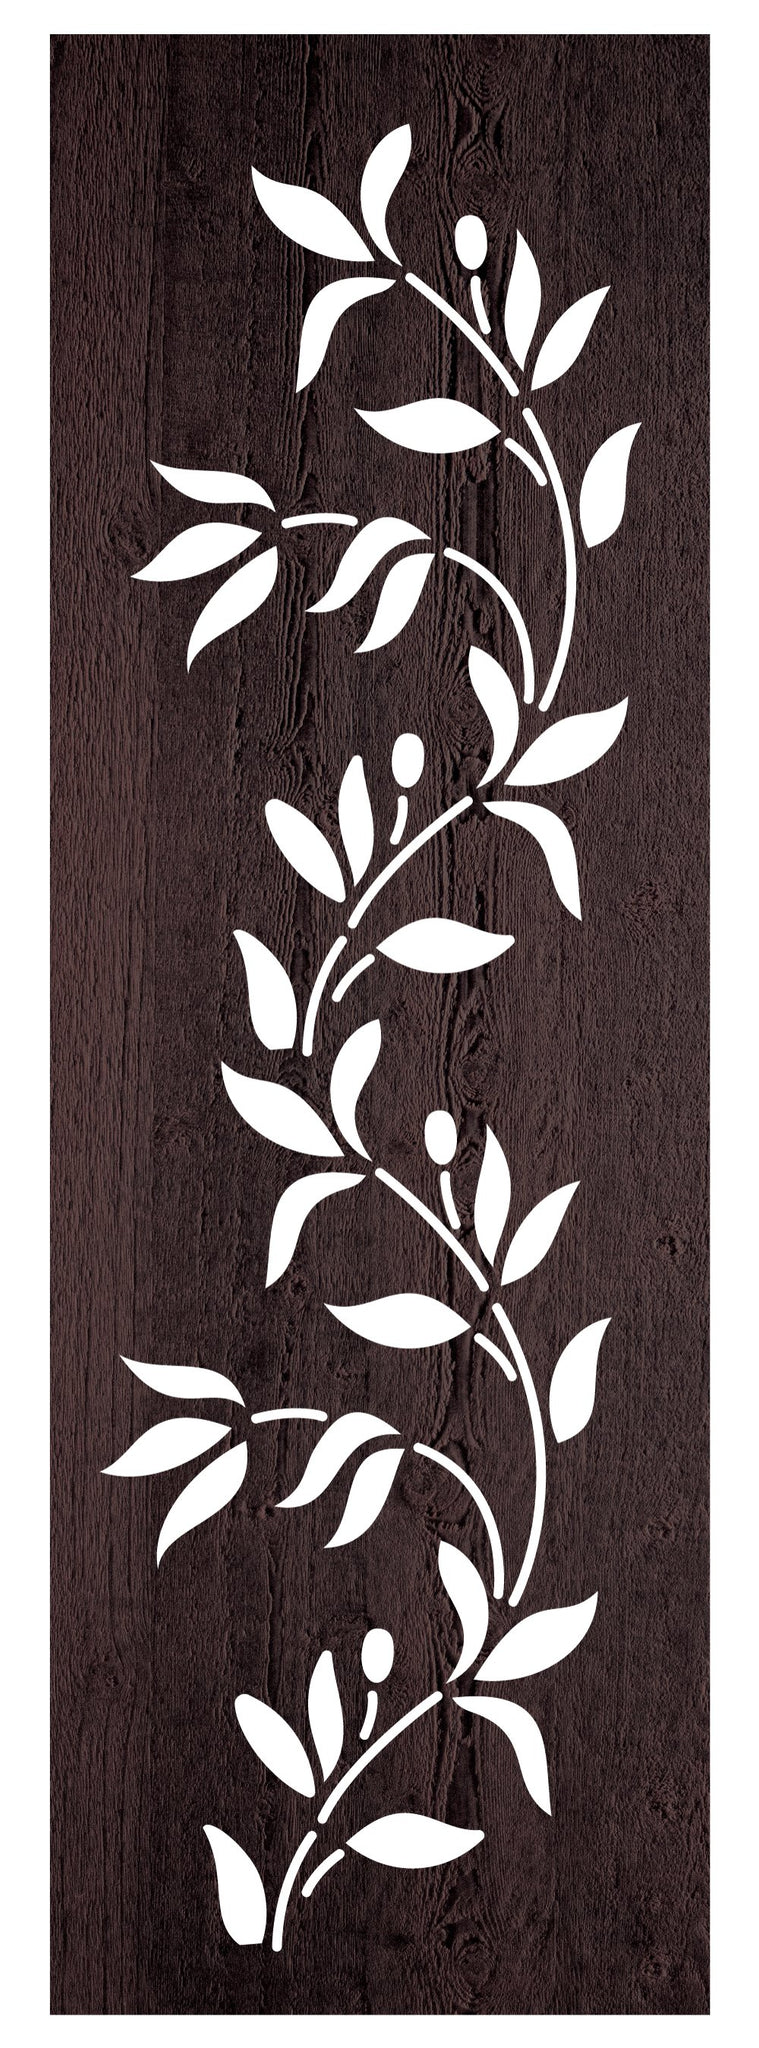 Climbing Vine - 1800 x 600 mm - 9 mm Decorative Hardwood Screen - Living Effects